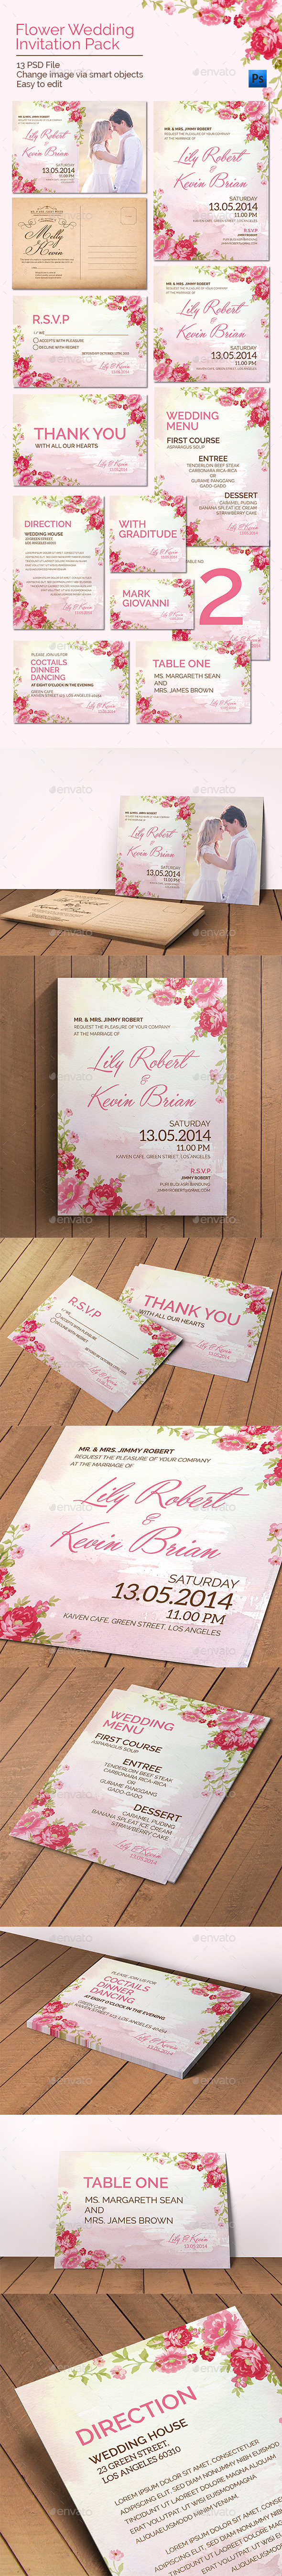 GraphicRiver Flower Wedding Invitation Pack 11254563